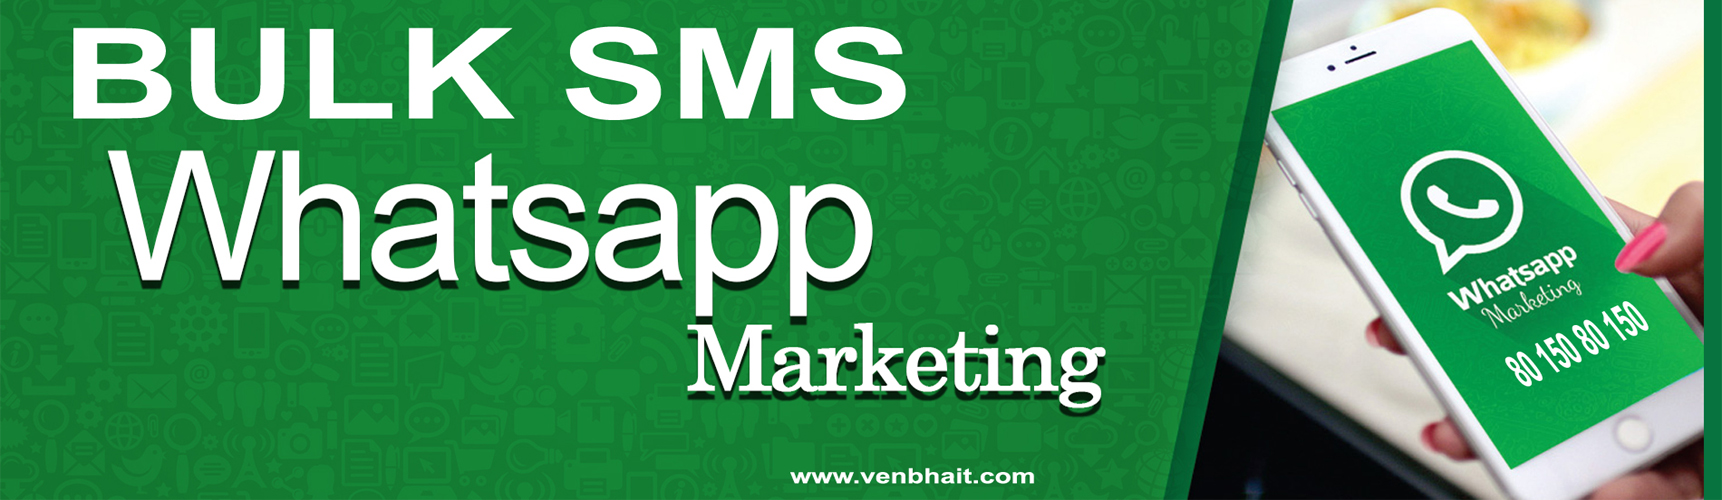 Bulk SMS India Bulk SMS Best No 1 Company India